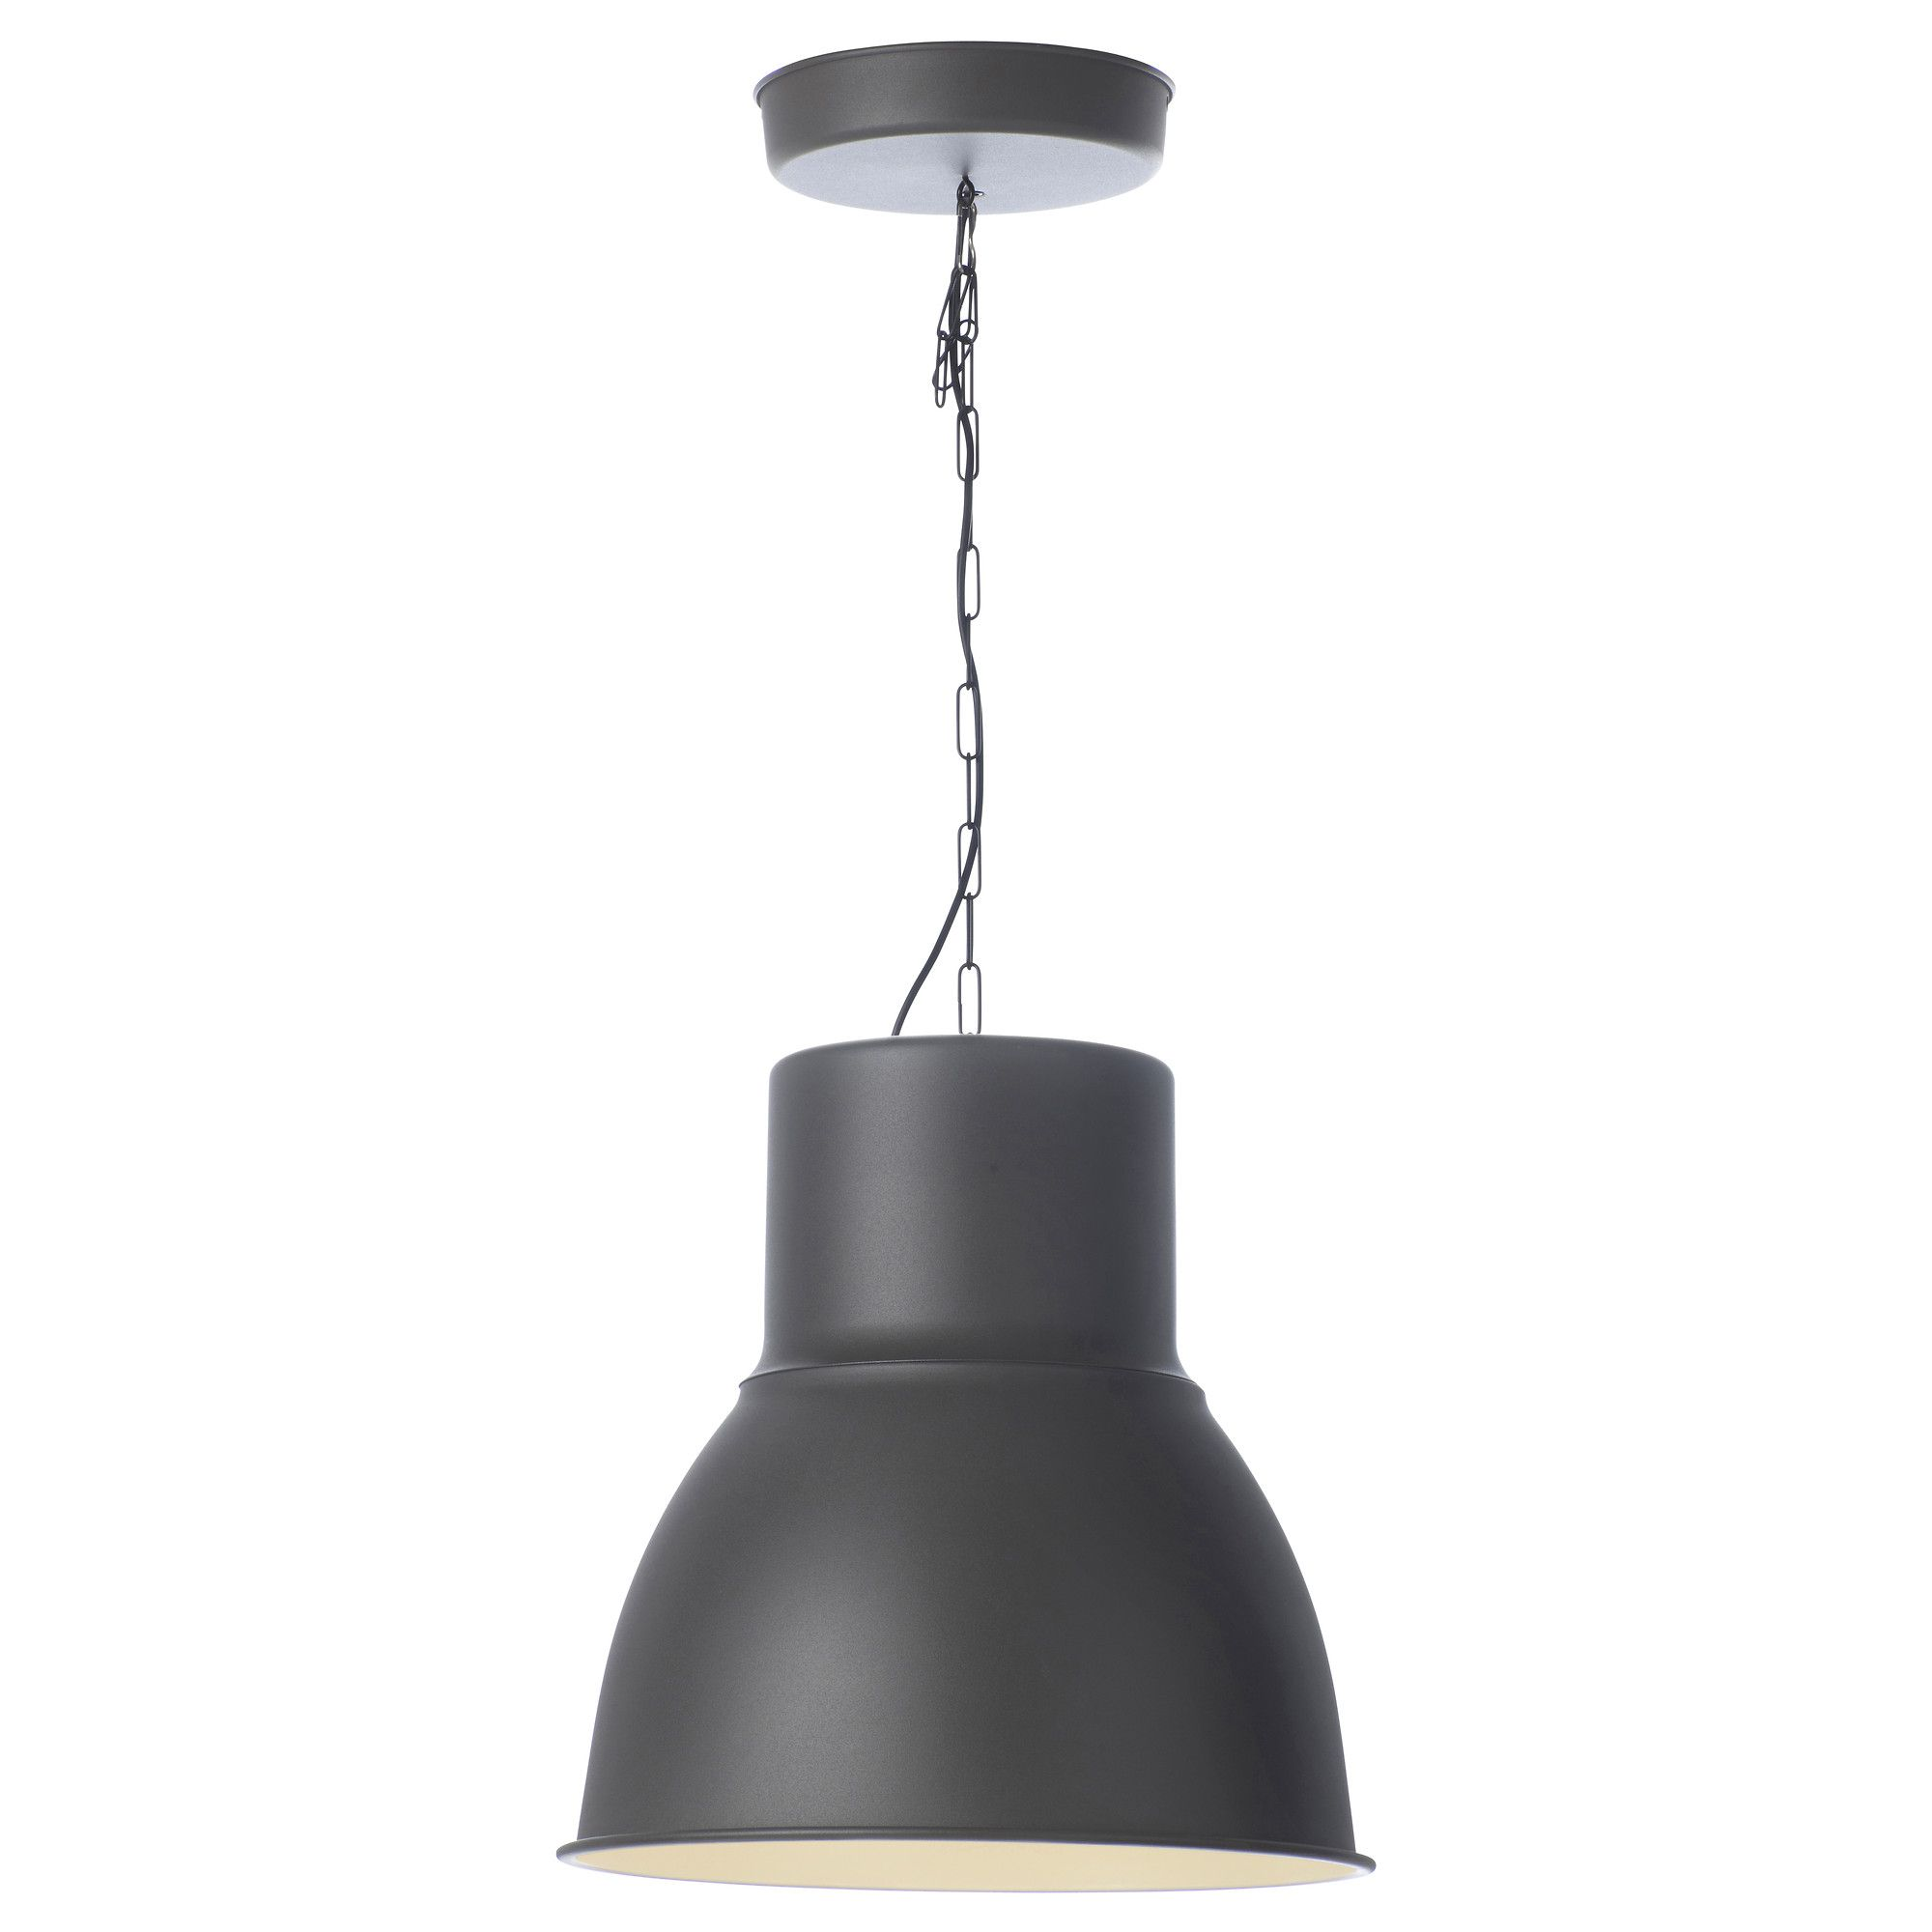 led lighting lamp shop melodi products ie pendant ireland white en ceiling ikea at lights